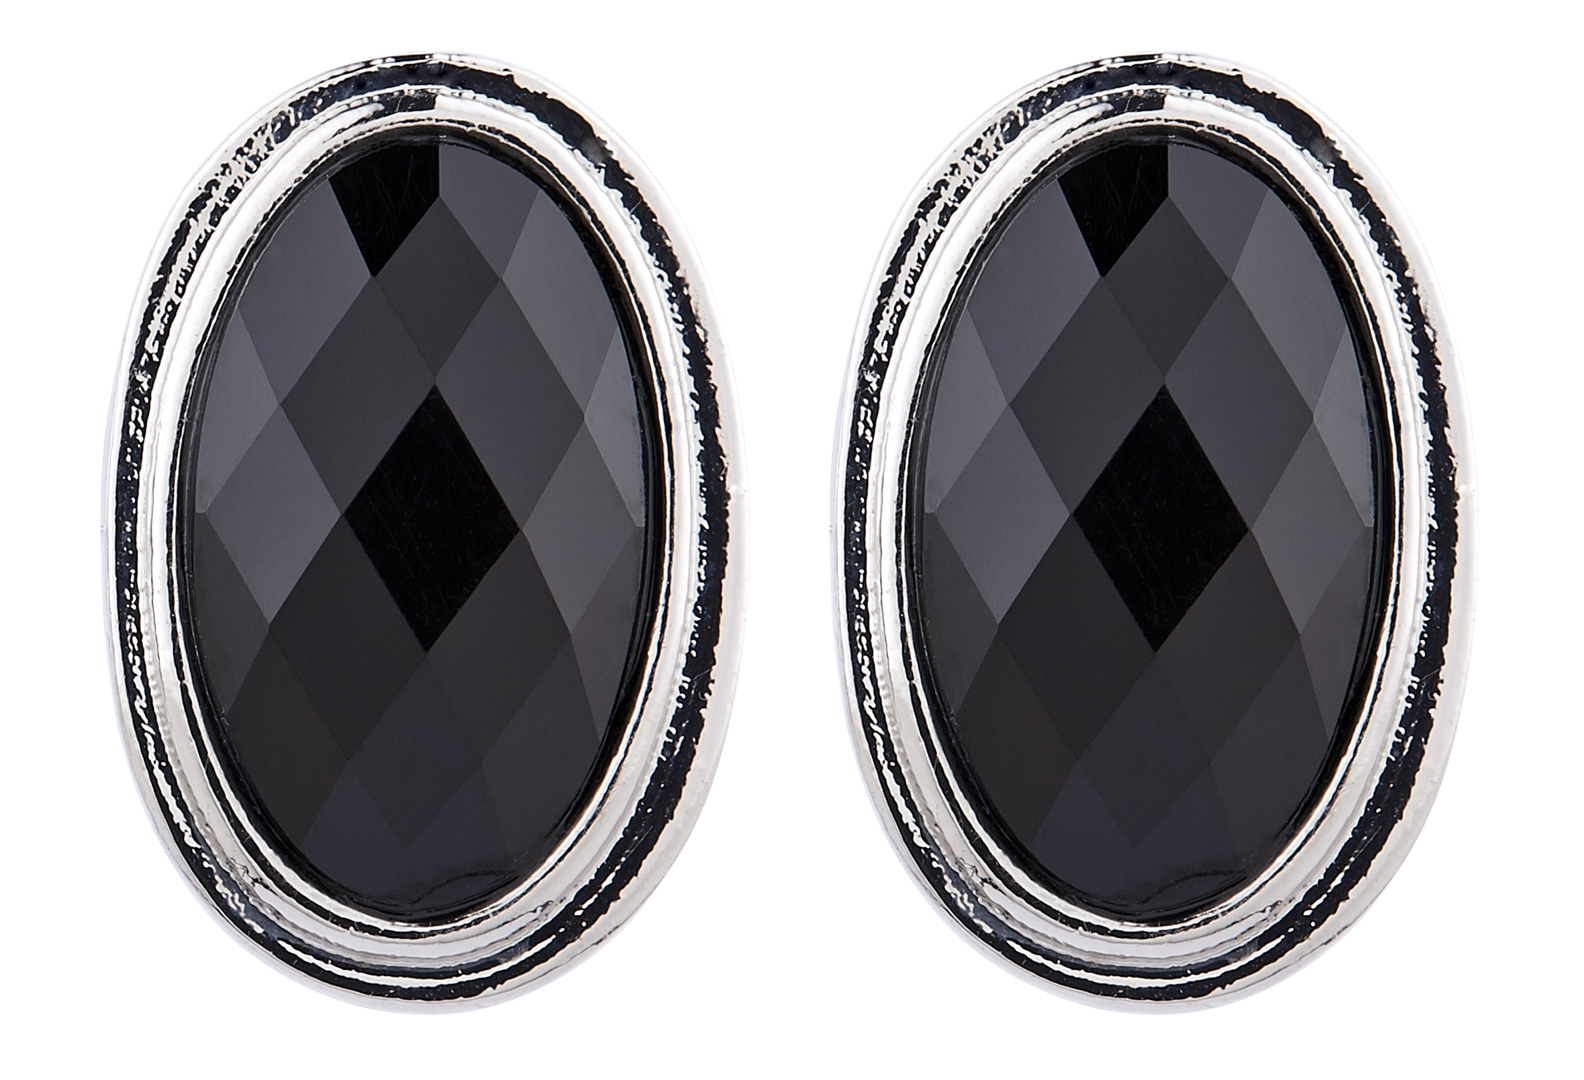 Clip On Earrings - Winnie - silver stud earring with a black oval stone